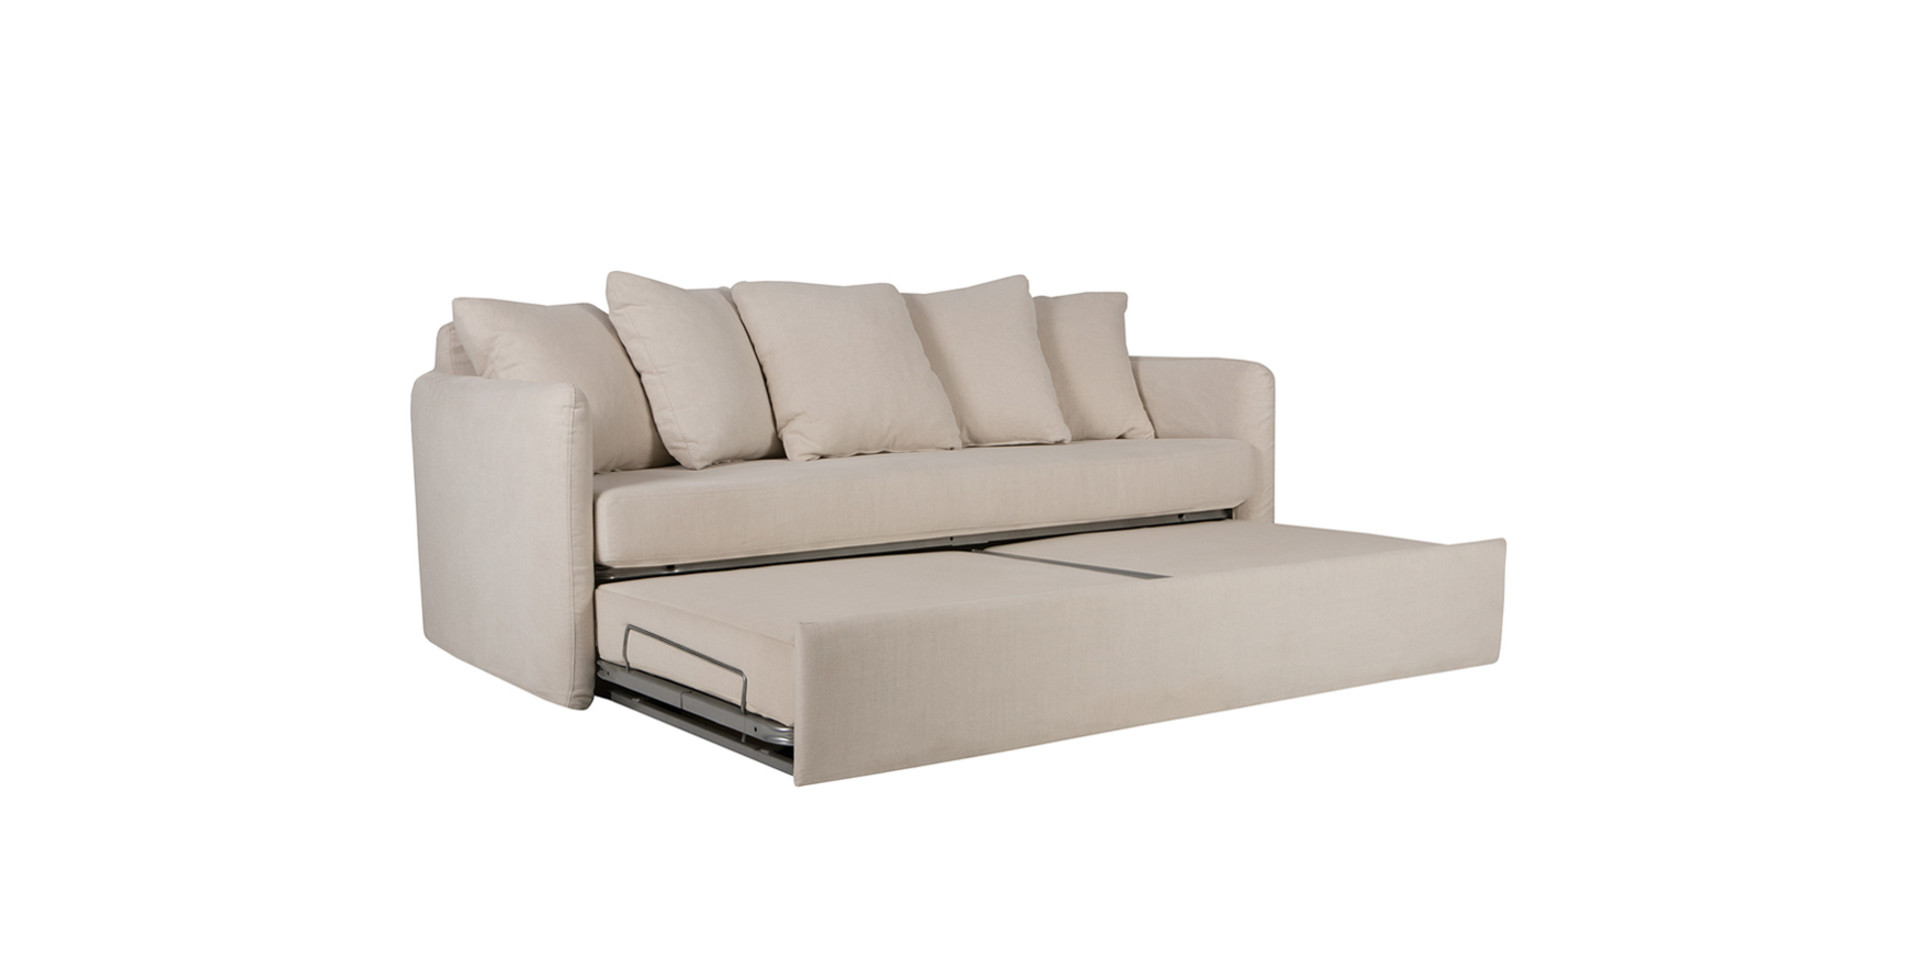 LOTTA_sofa_bed_caleido3790_beige_9